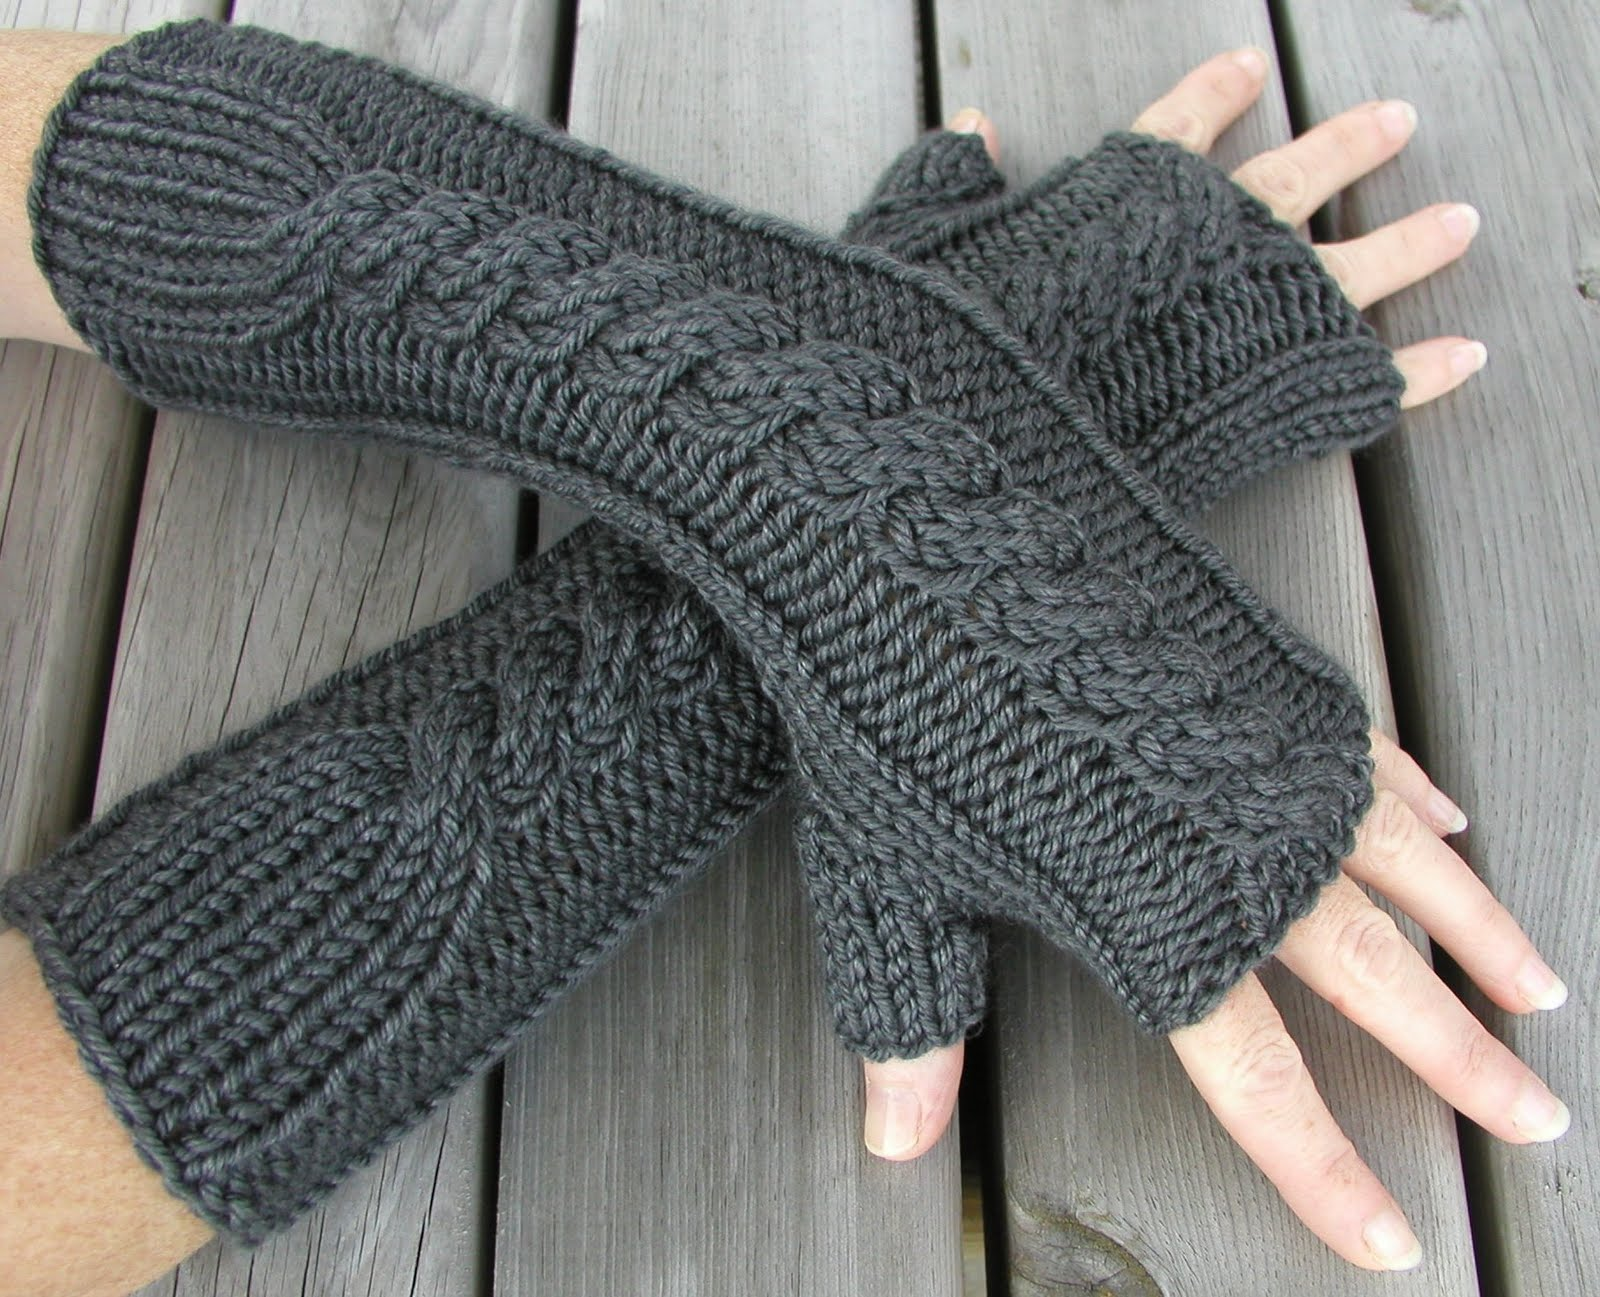 Knitted Hand Warmers Free Patterns : Hand Knitted Things Patterns